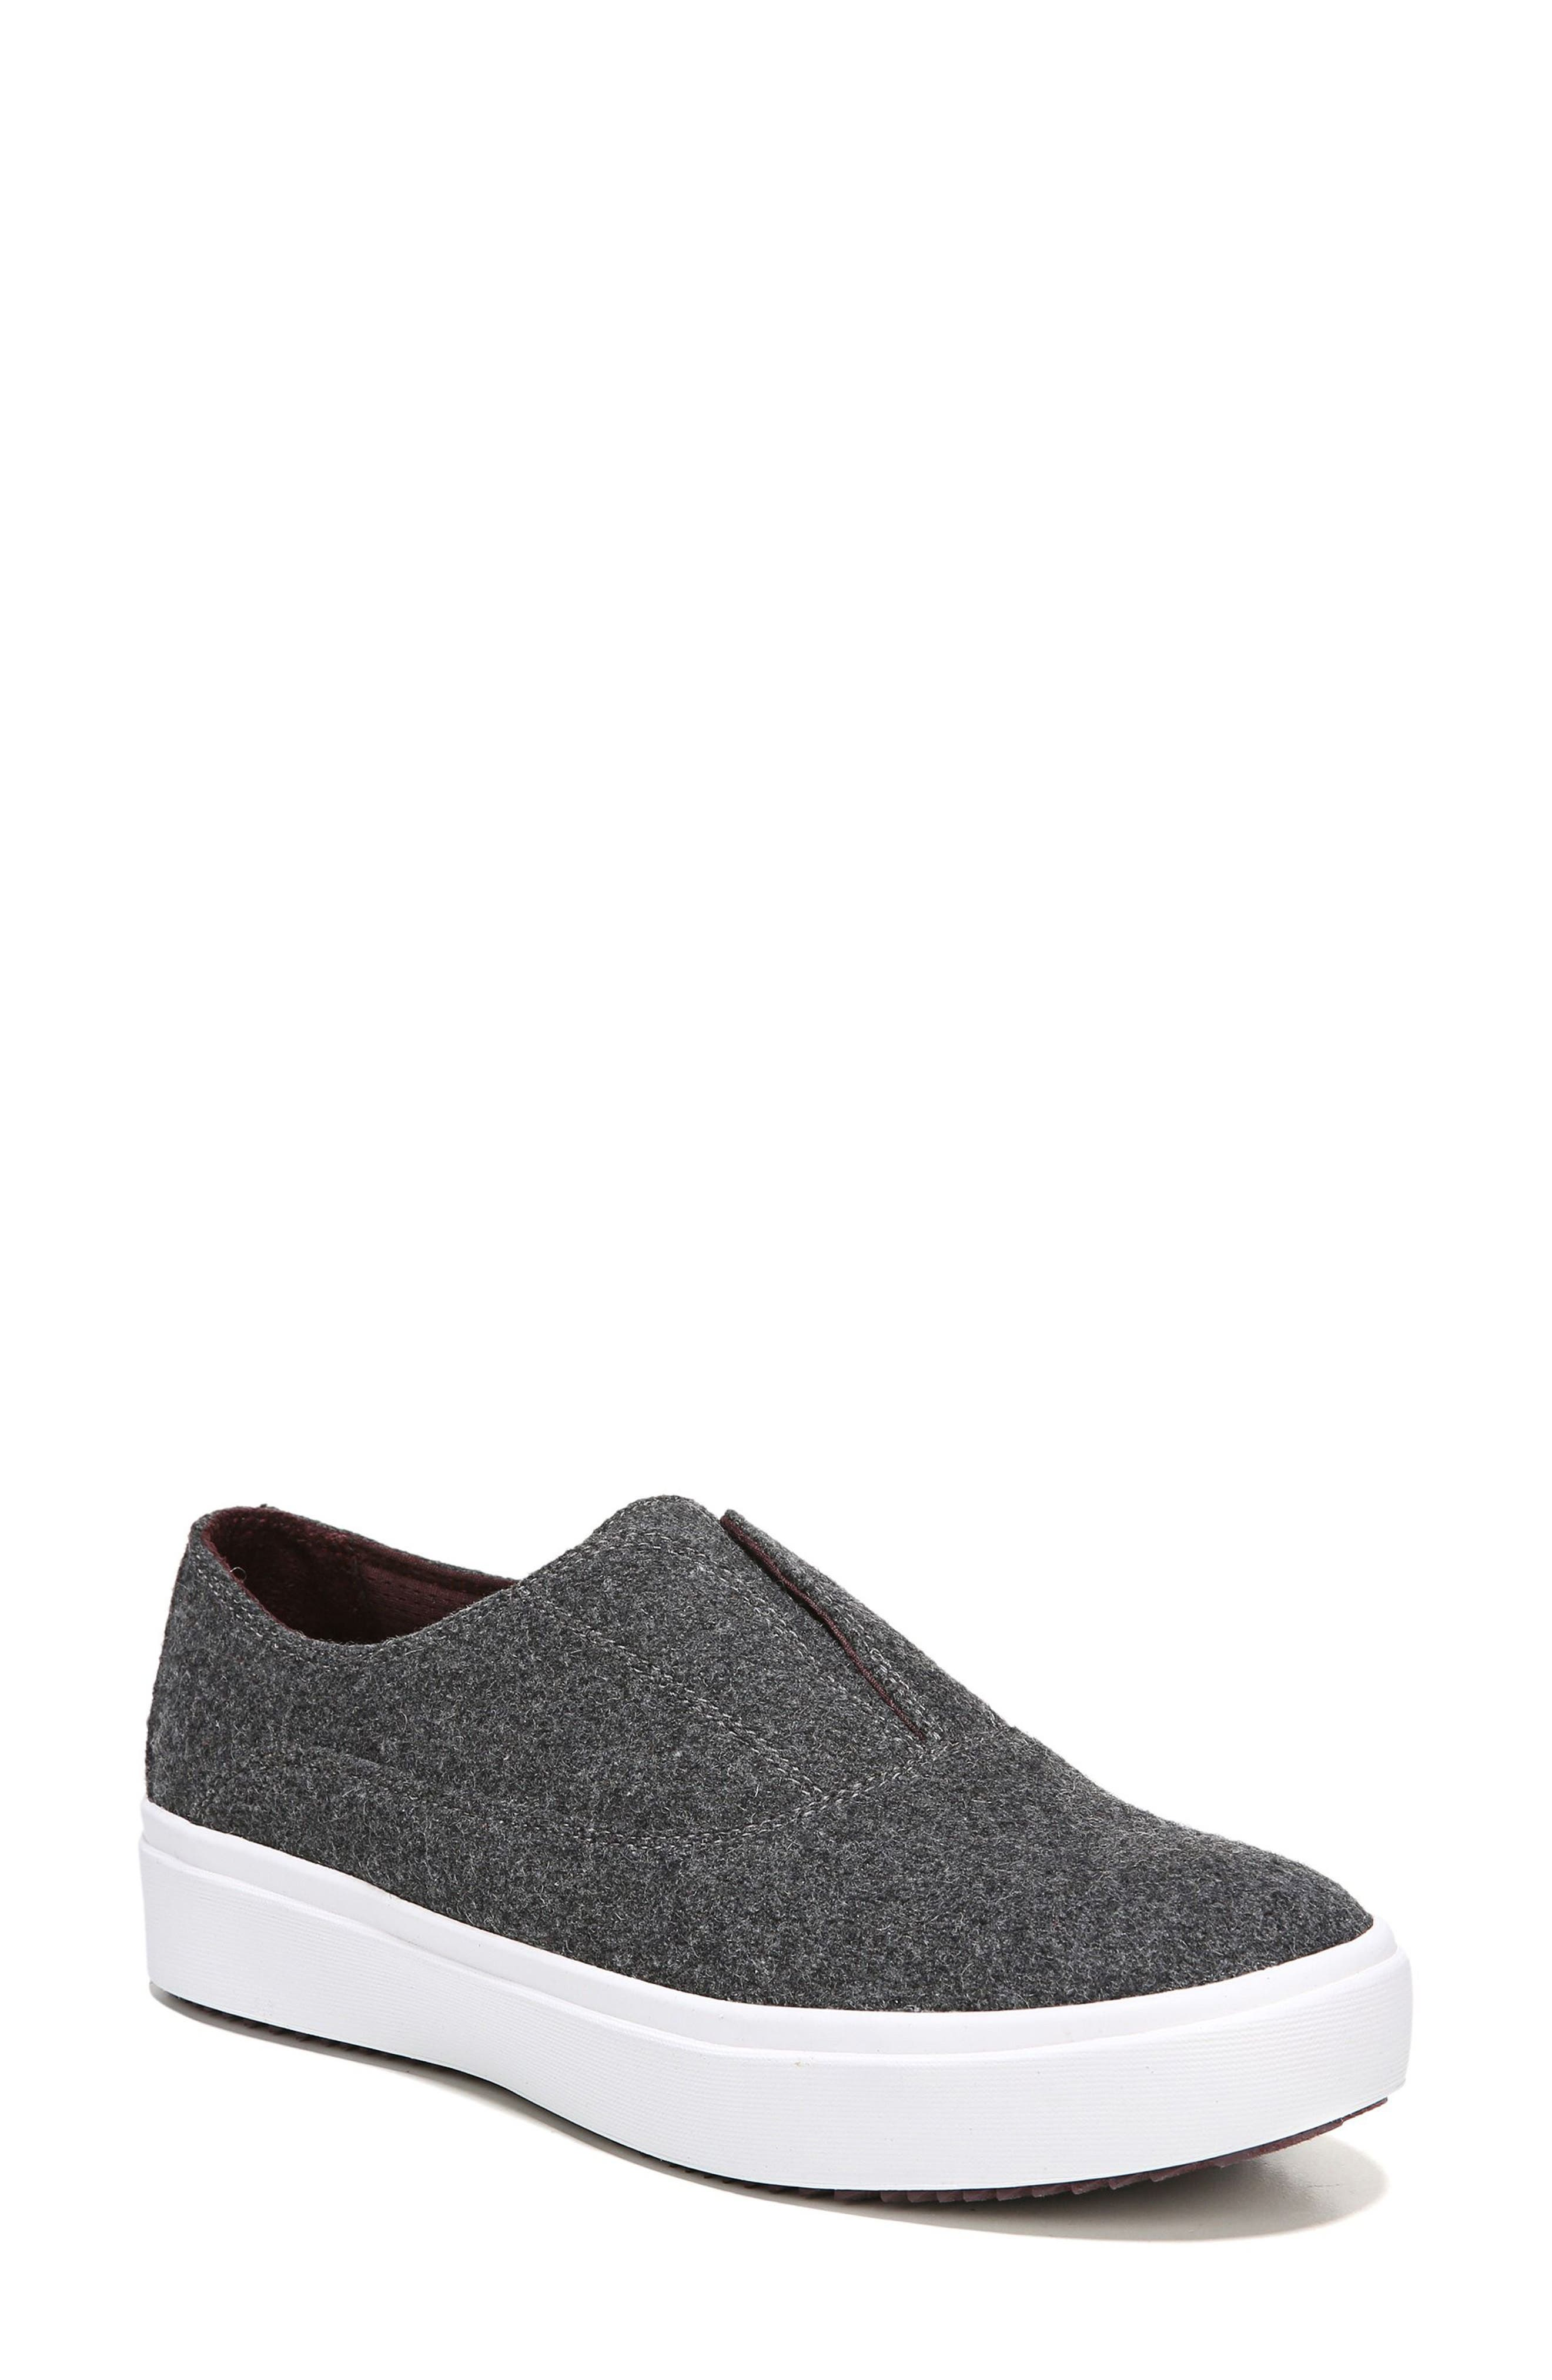 Brey Slip-On Sneaker,                         Main,                         color, Charcoal Fabric